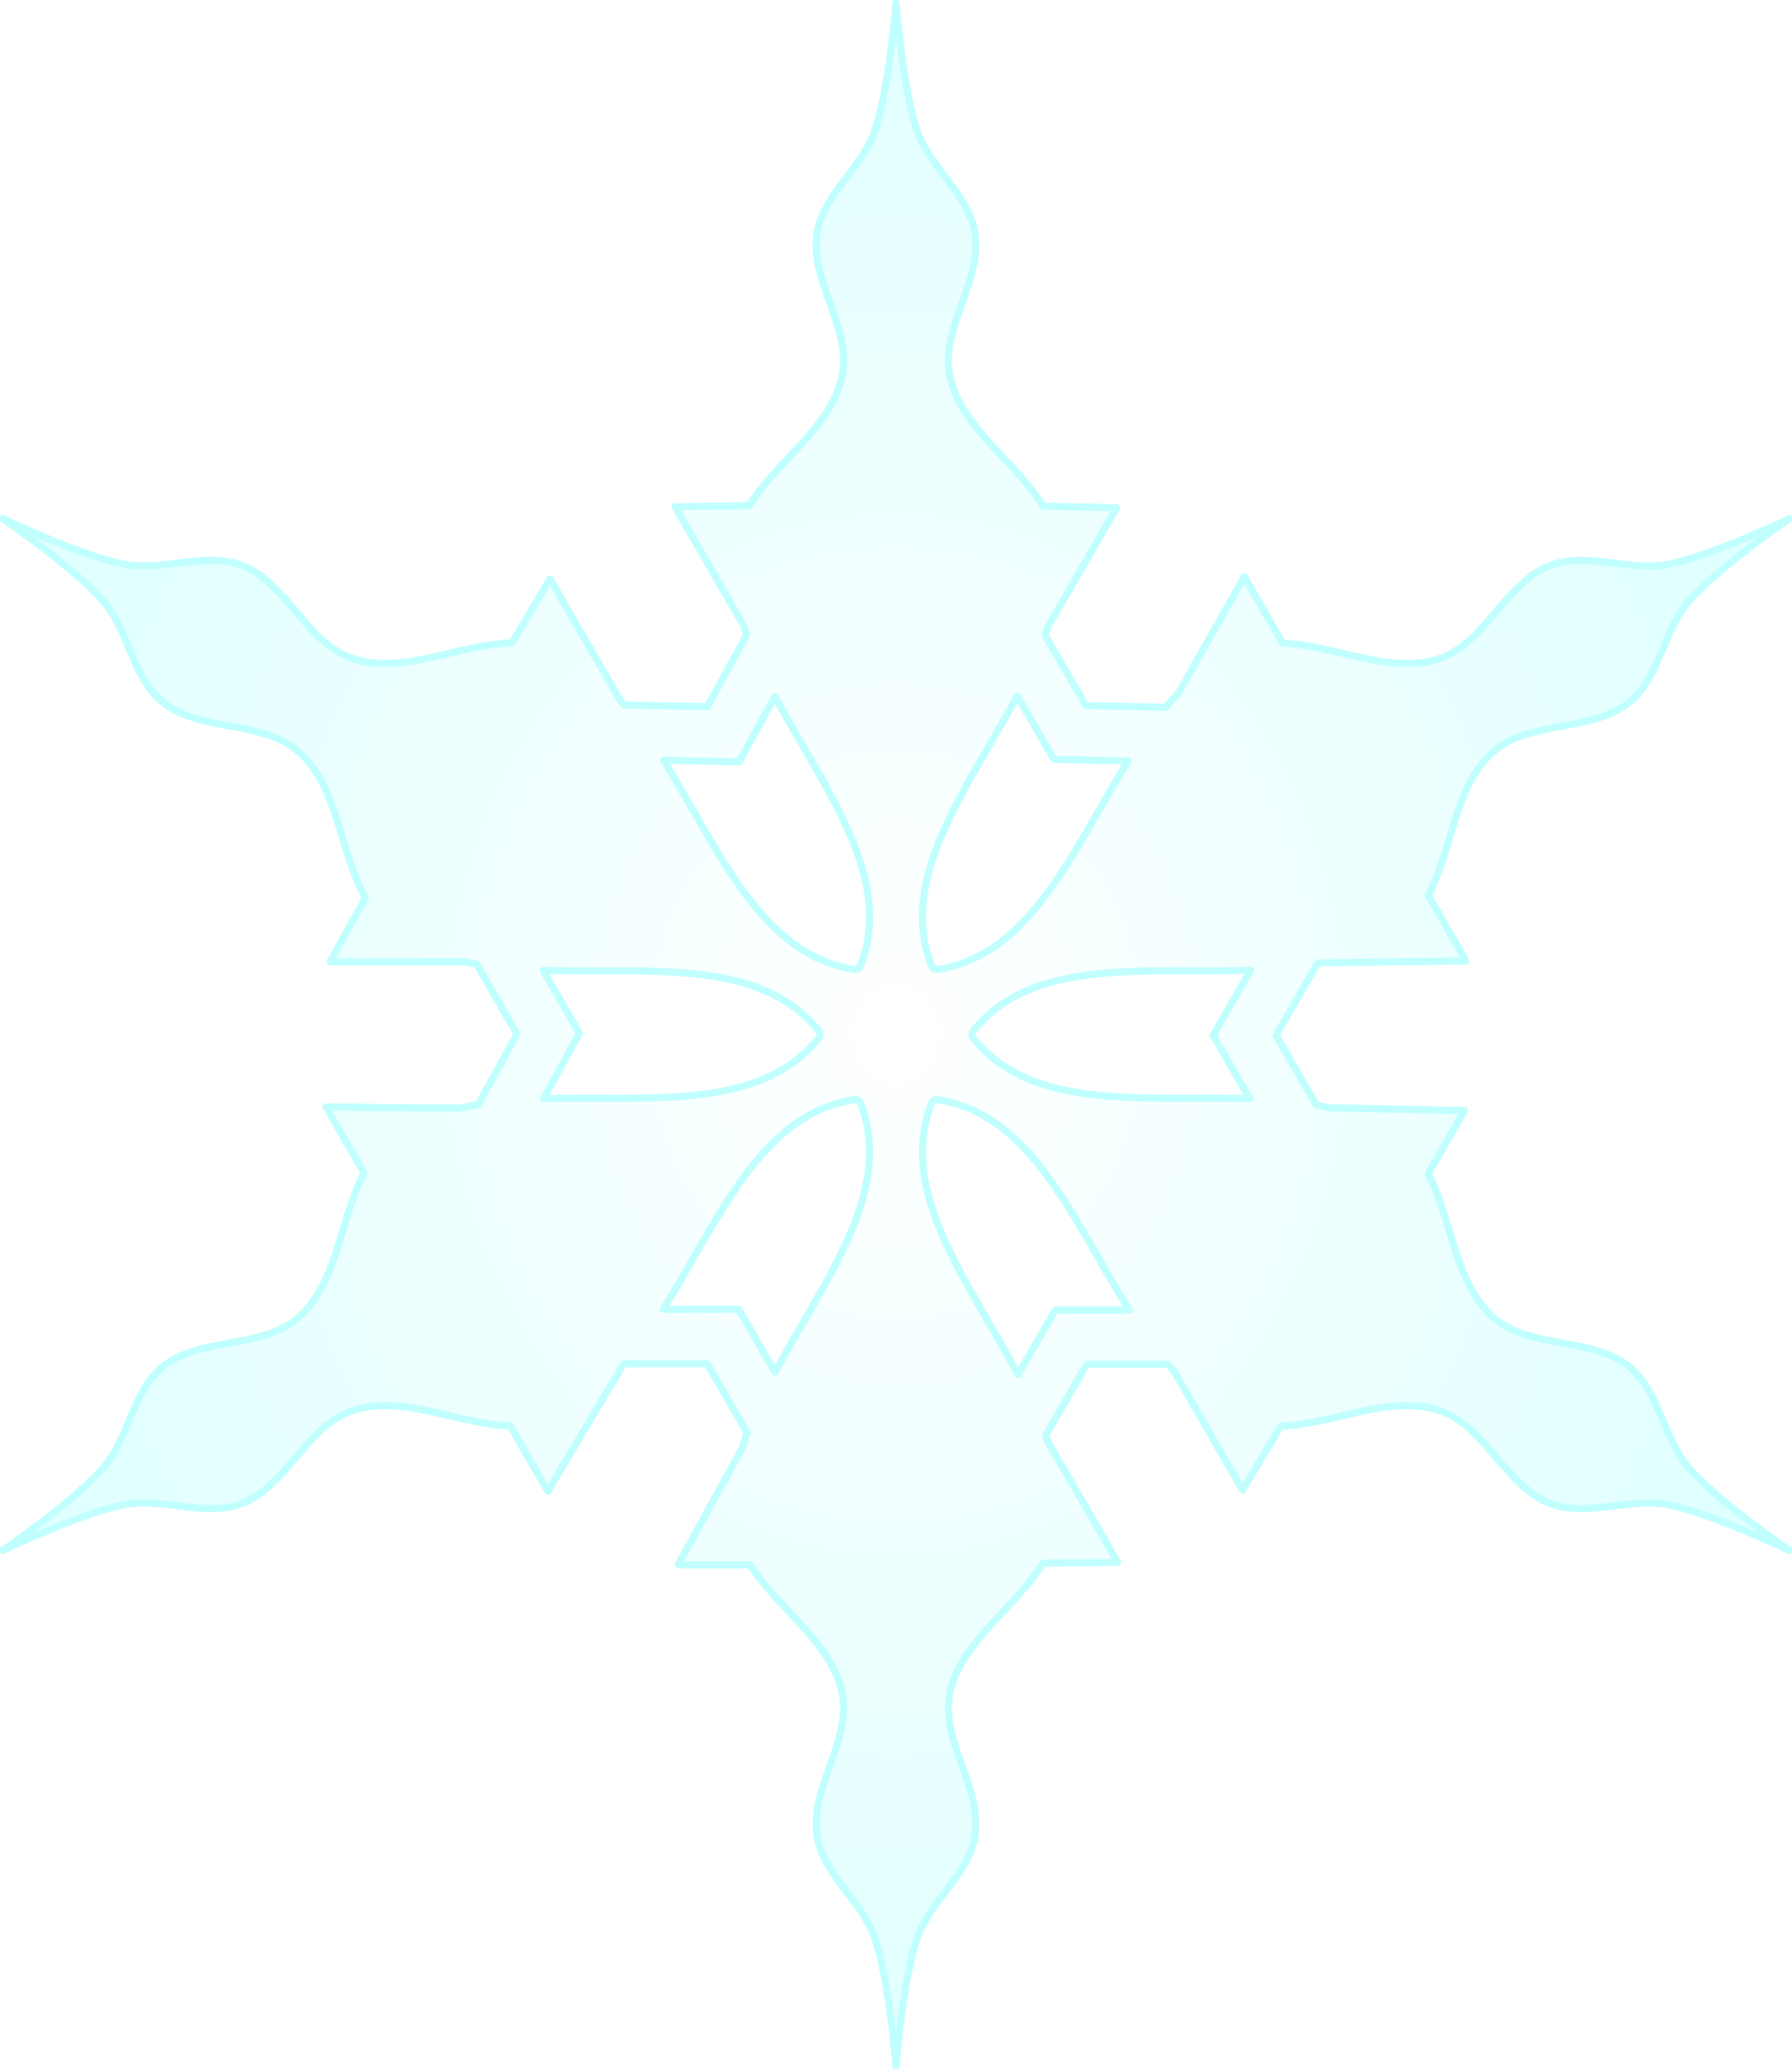 Snowflake 4 by Arvin61r58